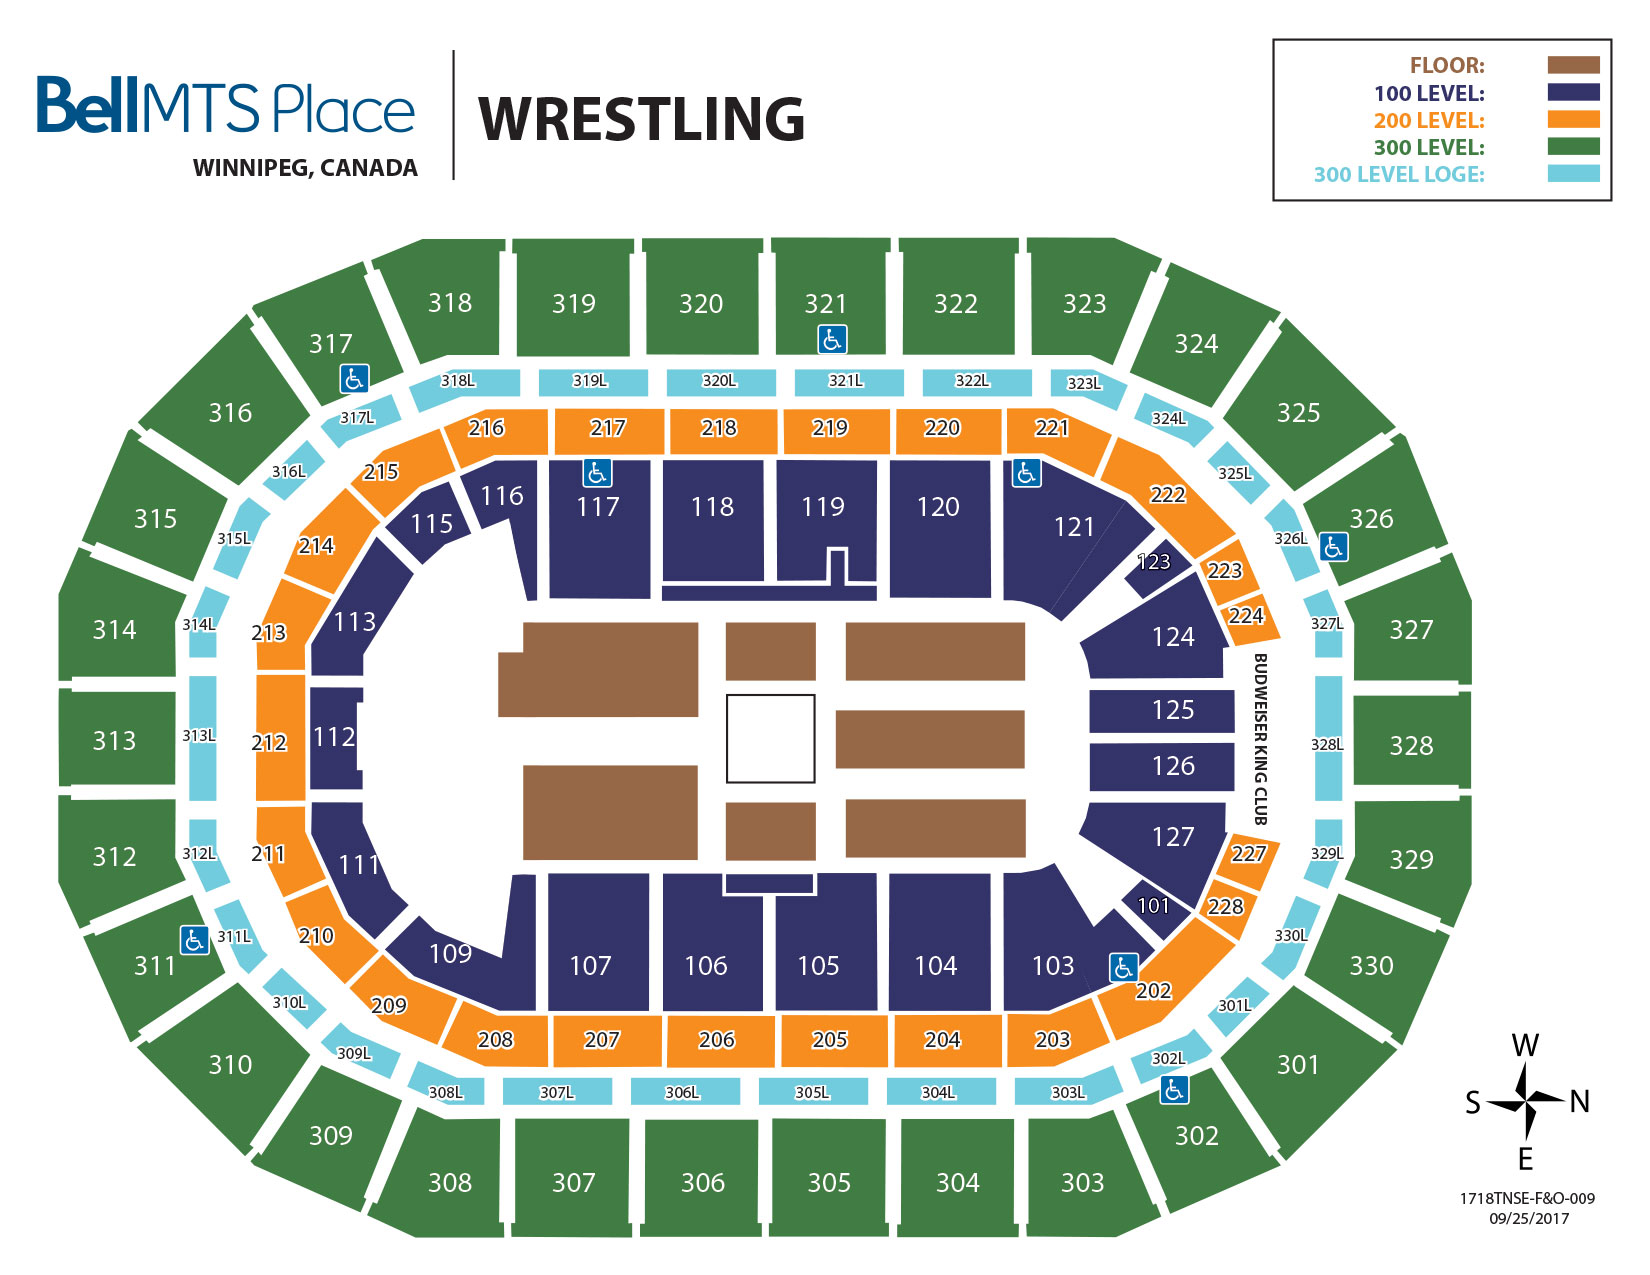 Bell MTS Place - Wrestling